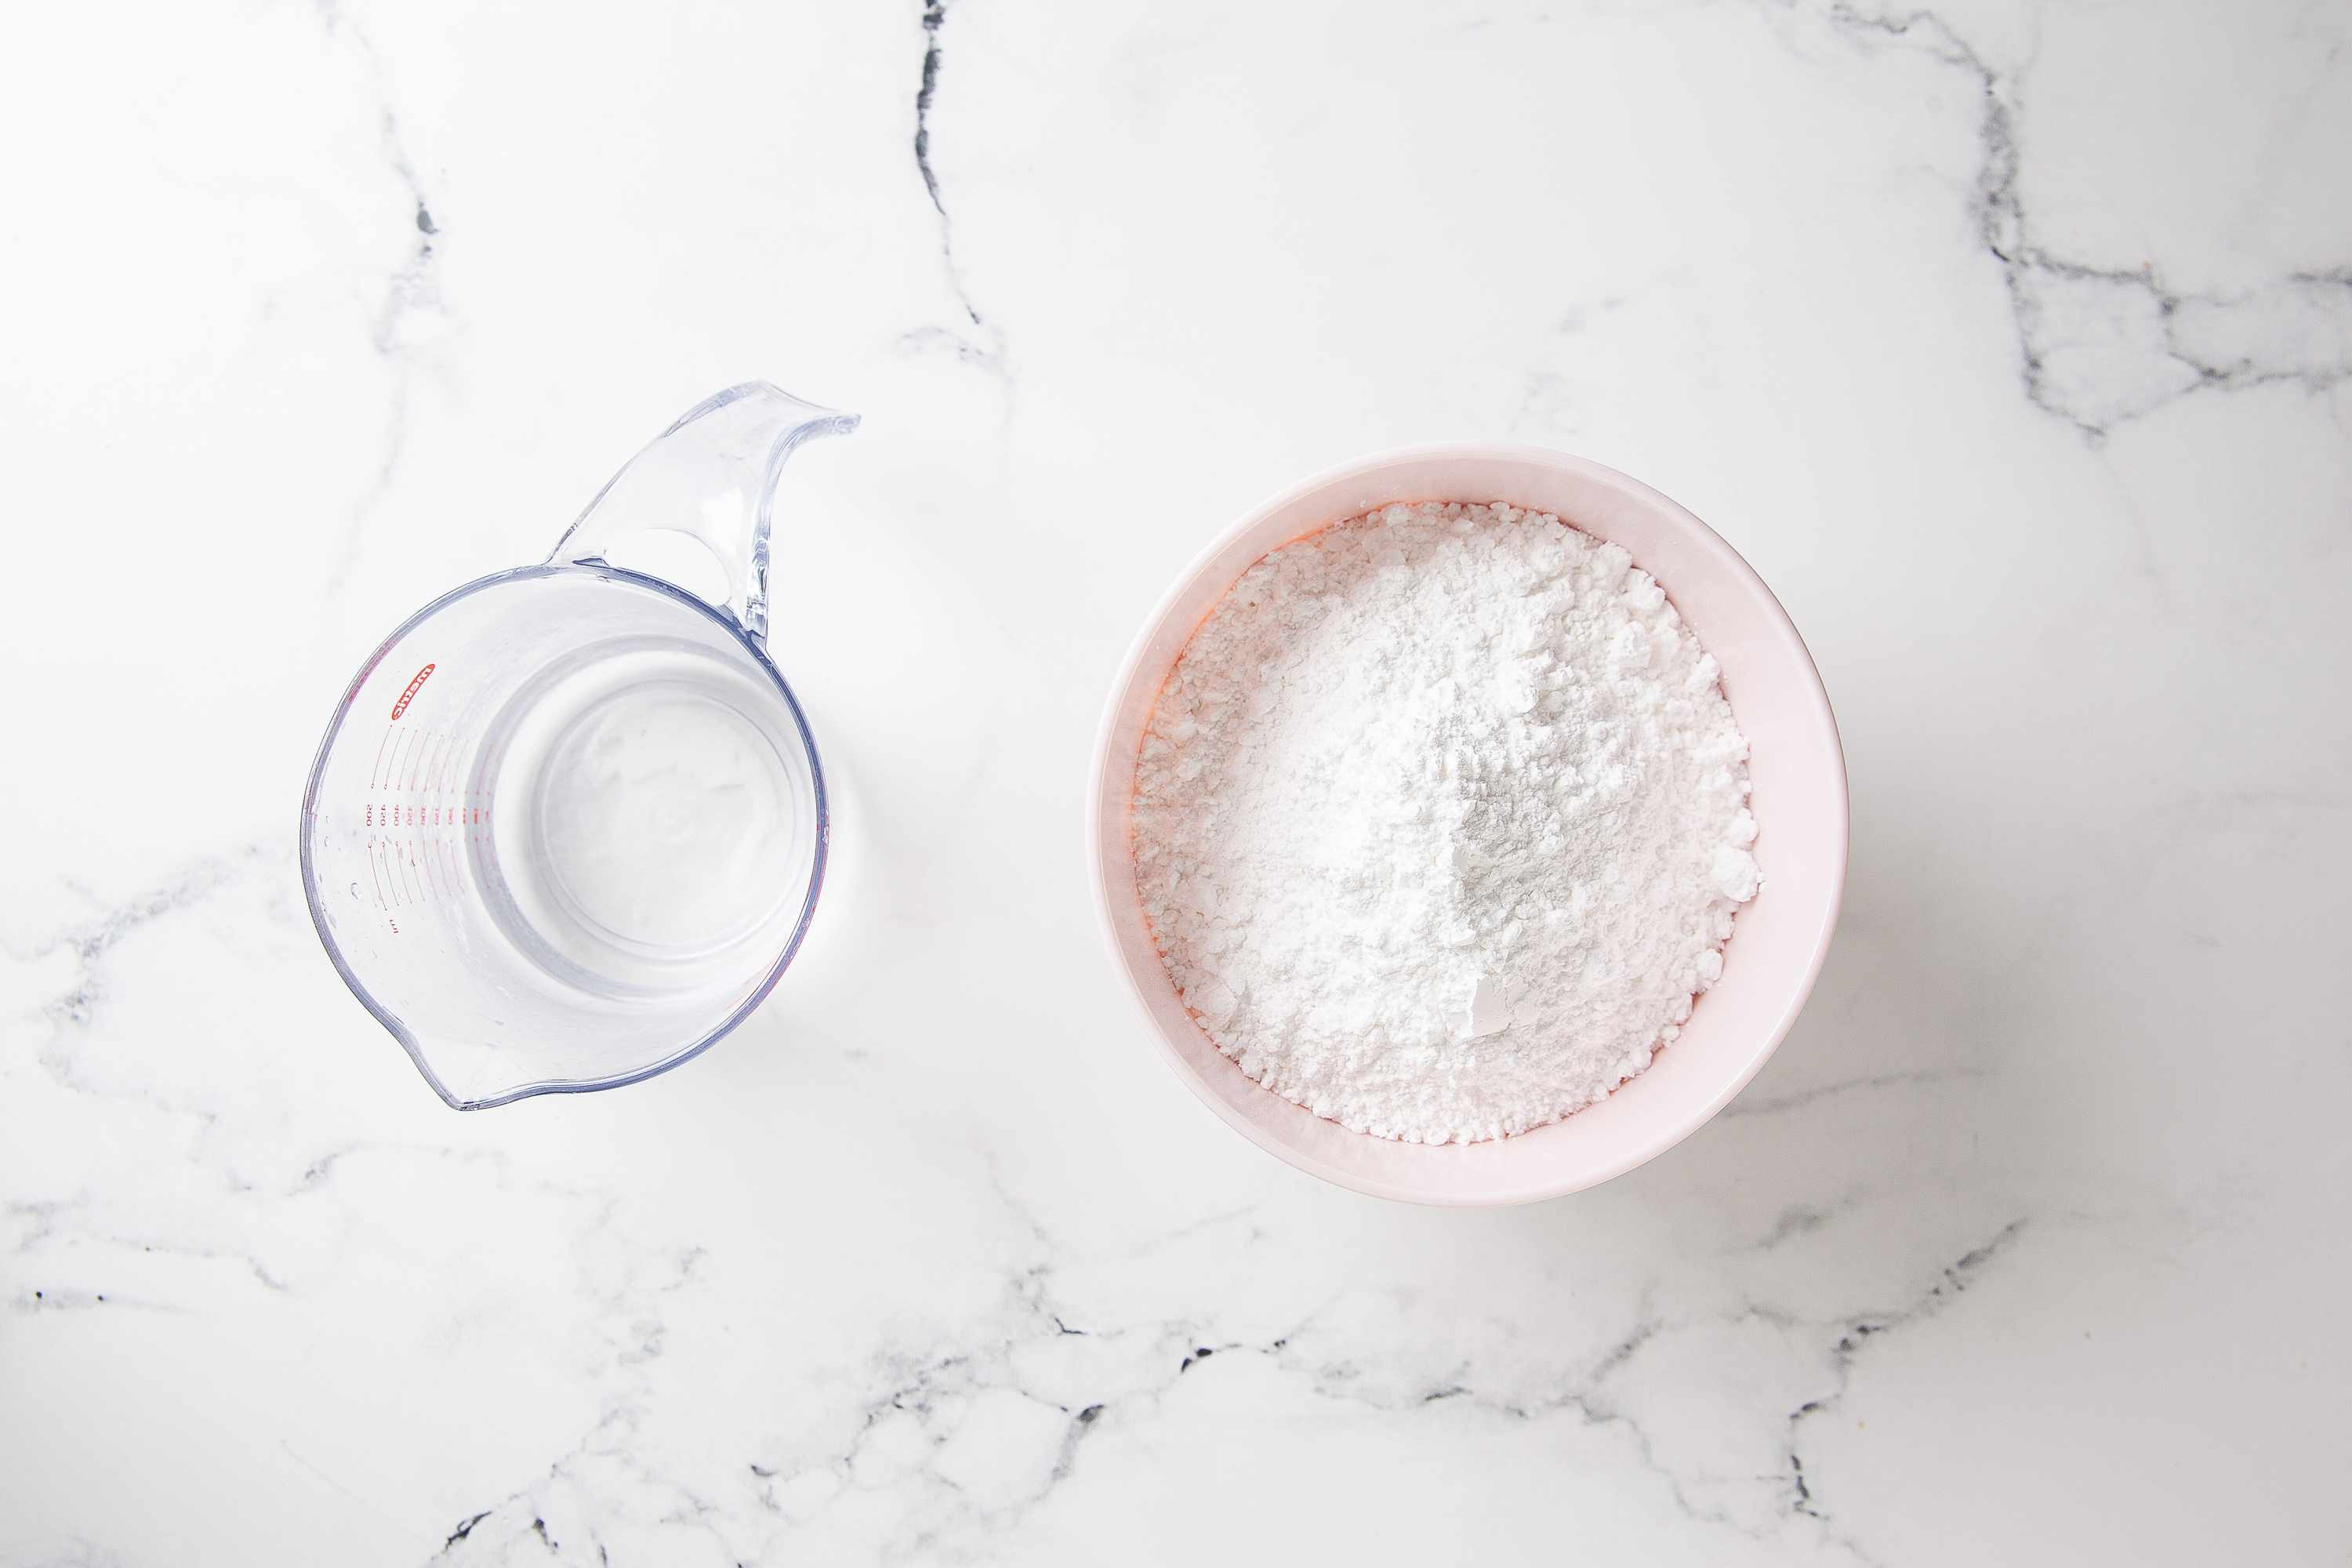 Combine water and powdered sugar